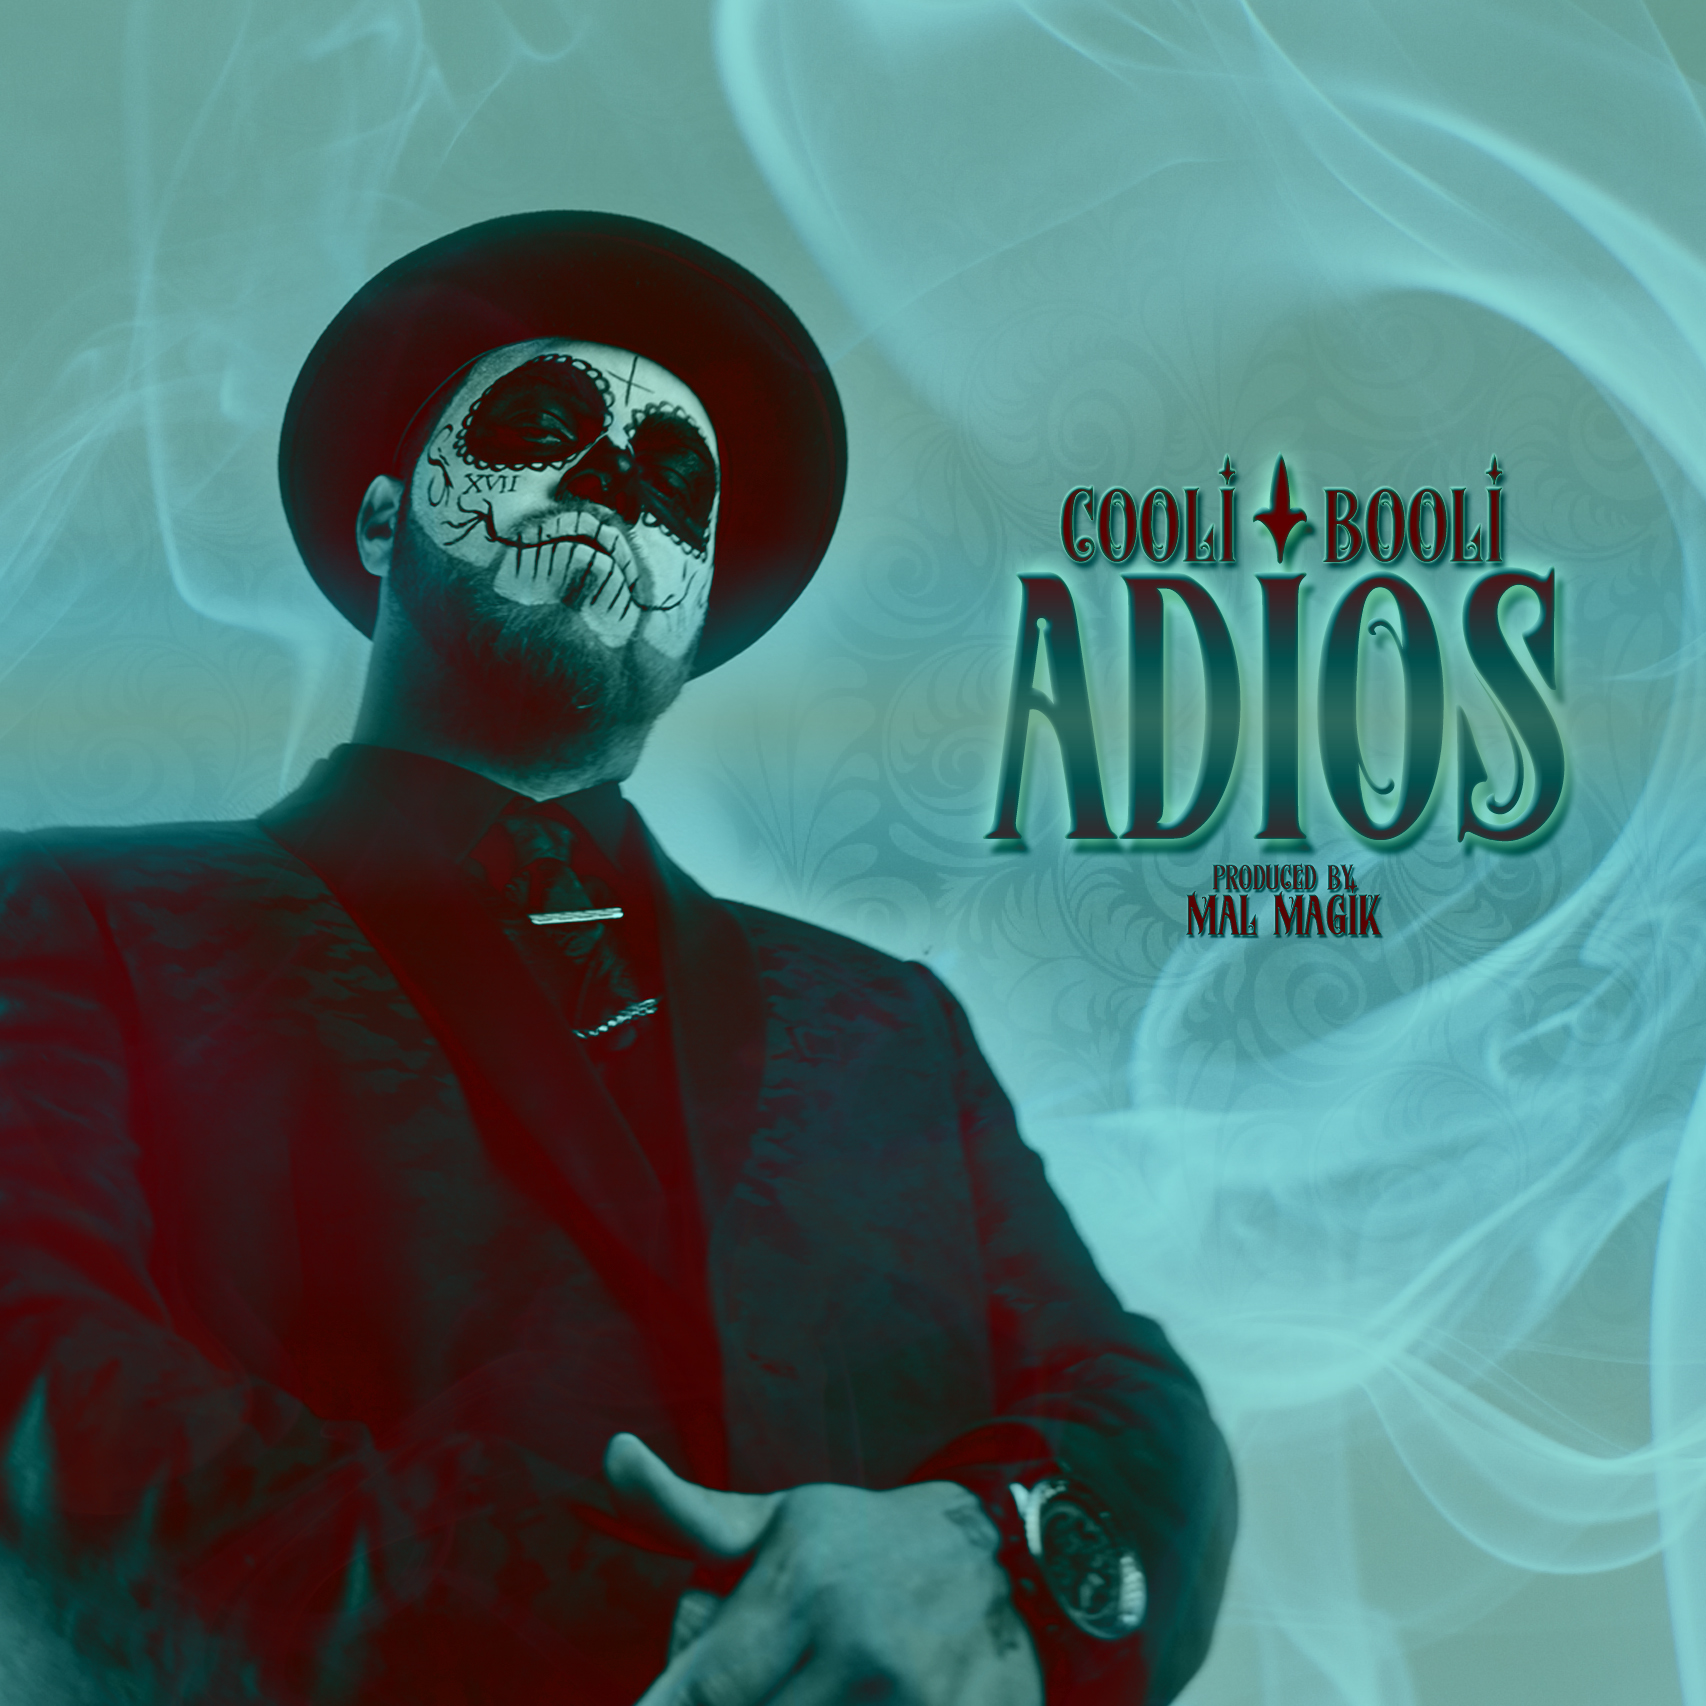 Adios Artwork - Cooli Booli